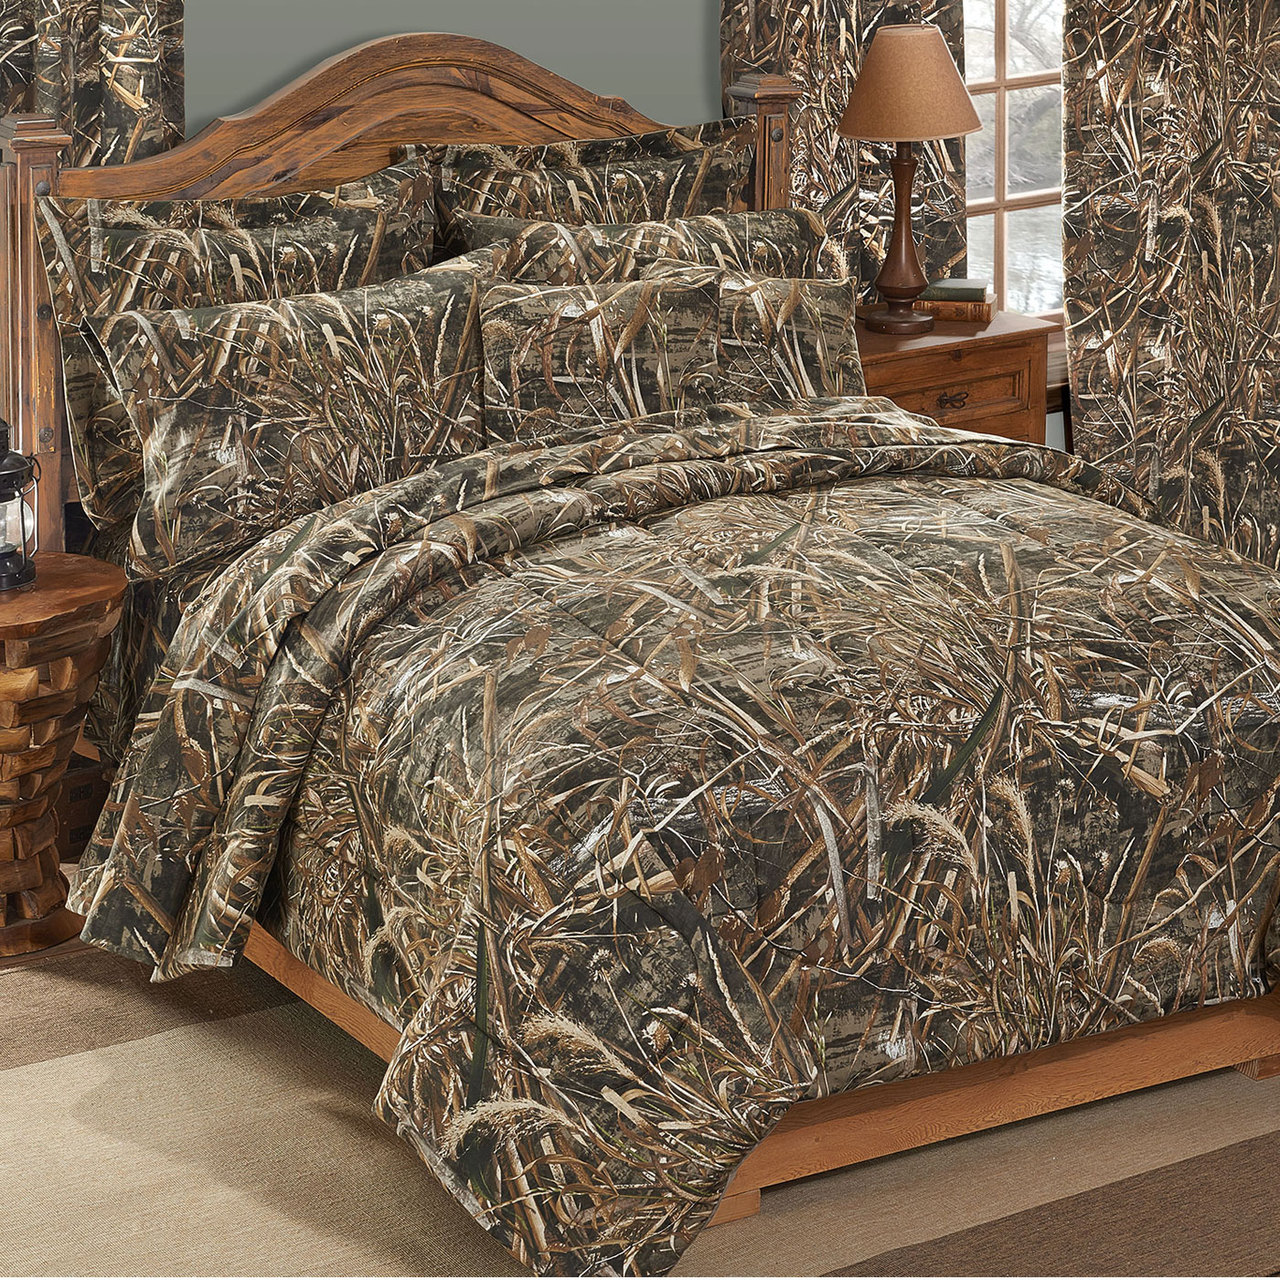 Realtree Max 5 Camo Comforter Sets Free Shipping Camo Bedding